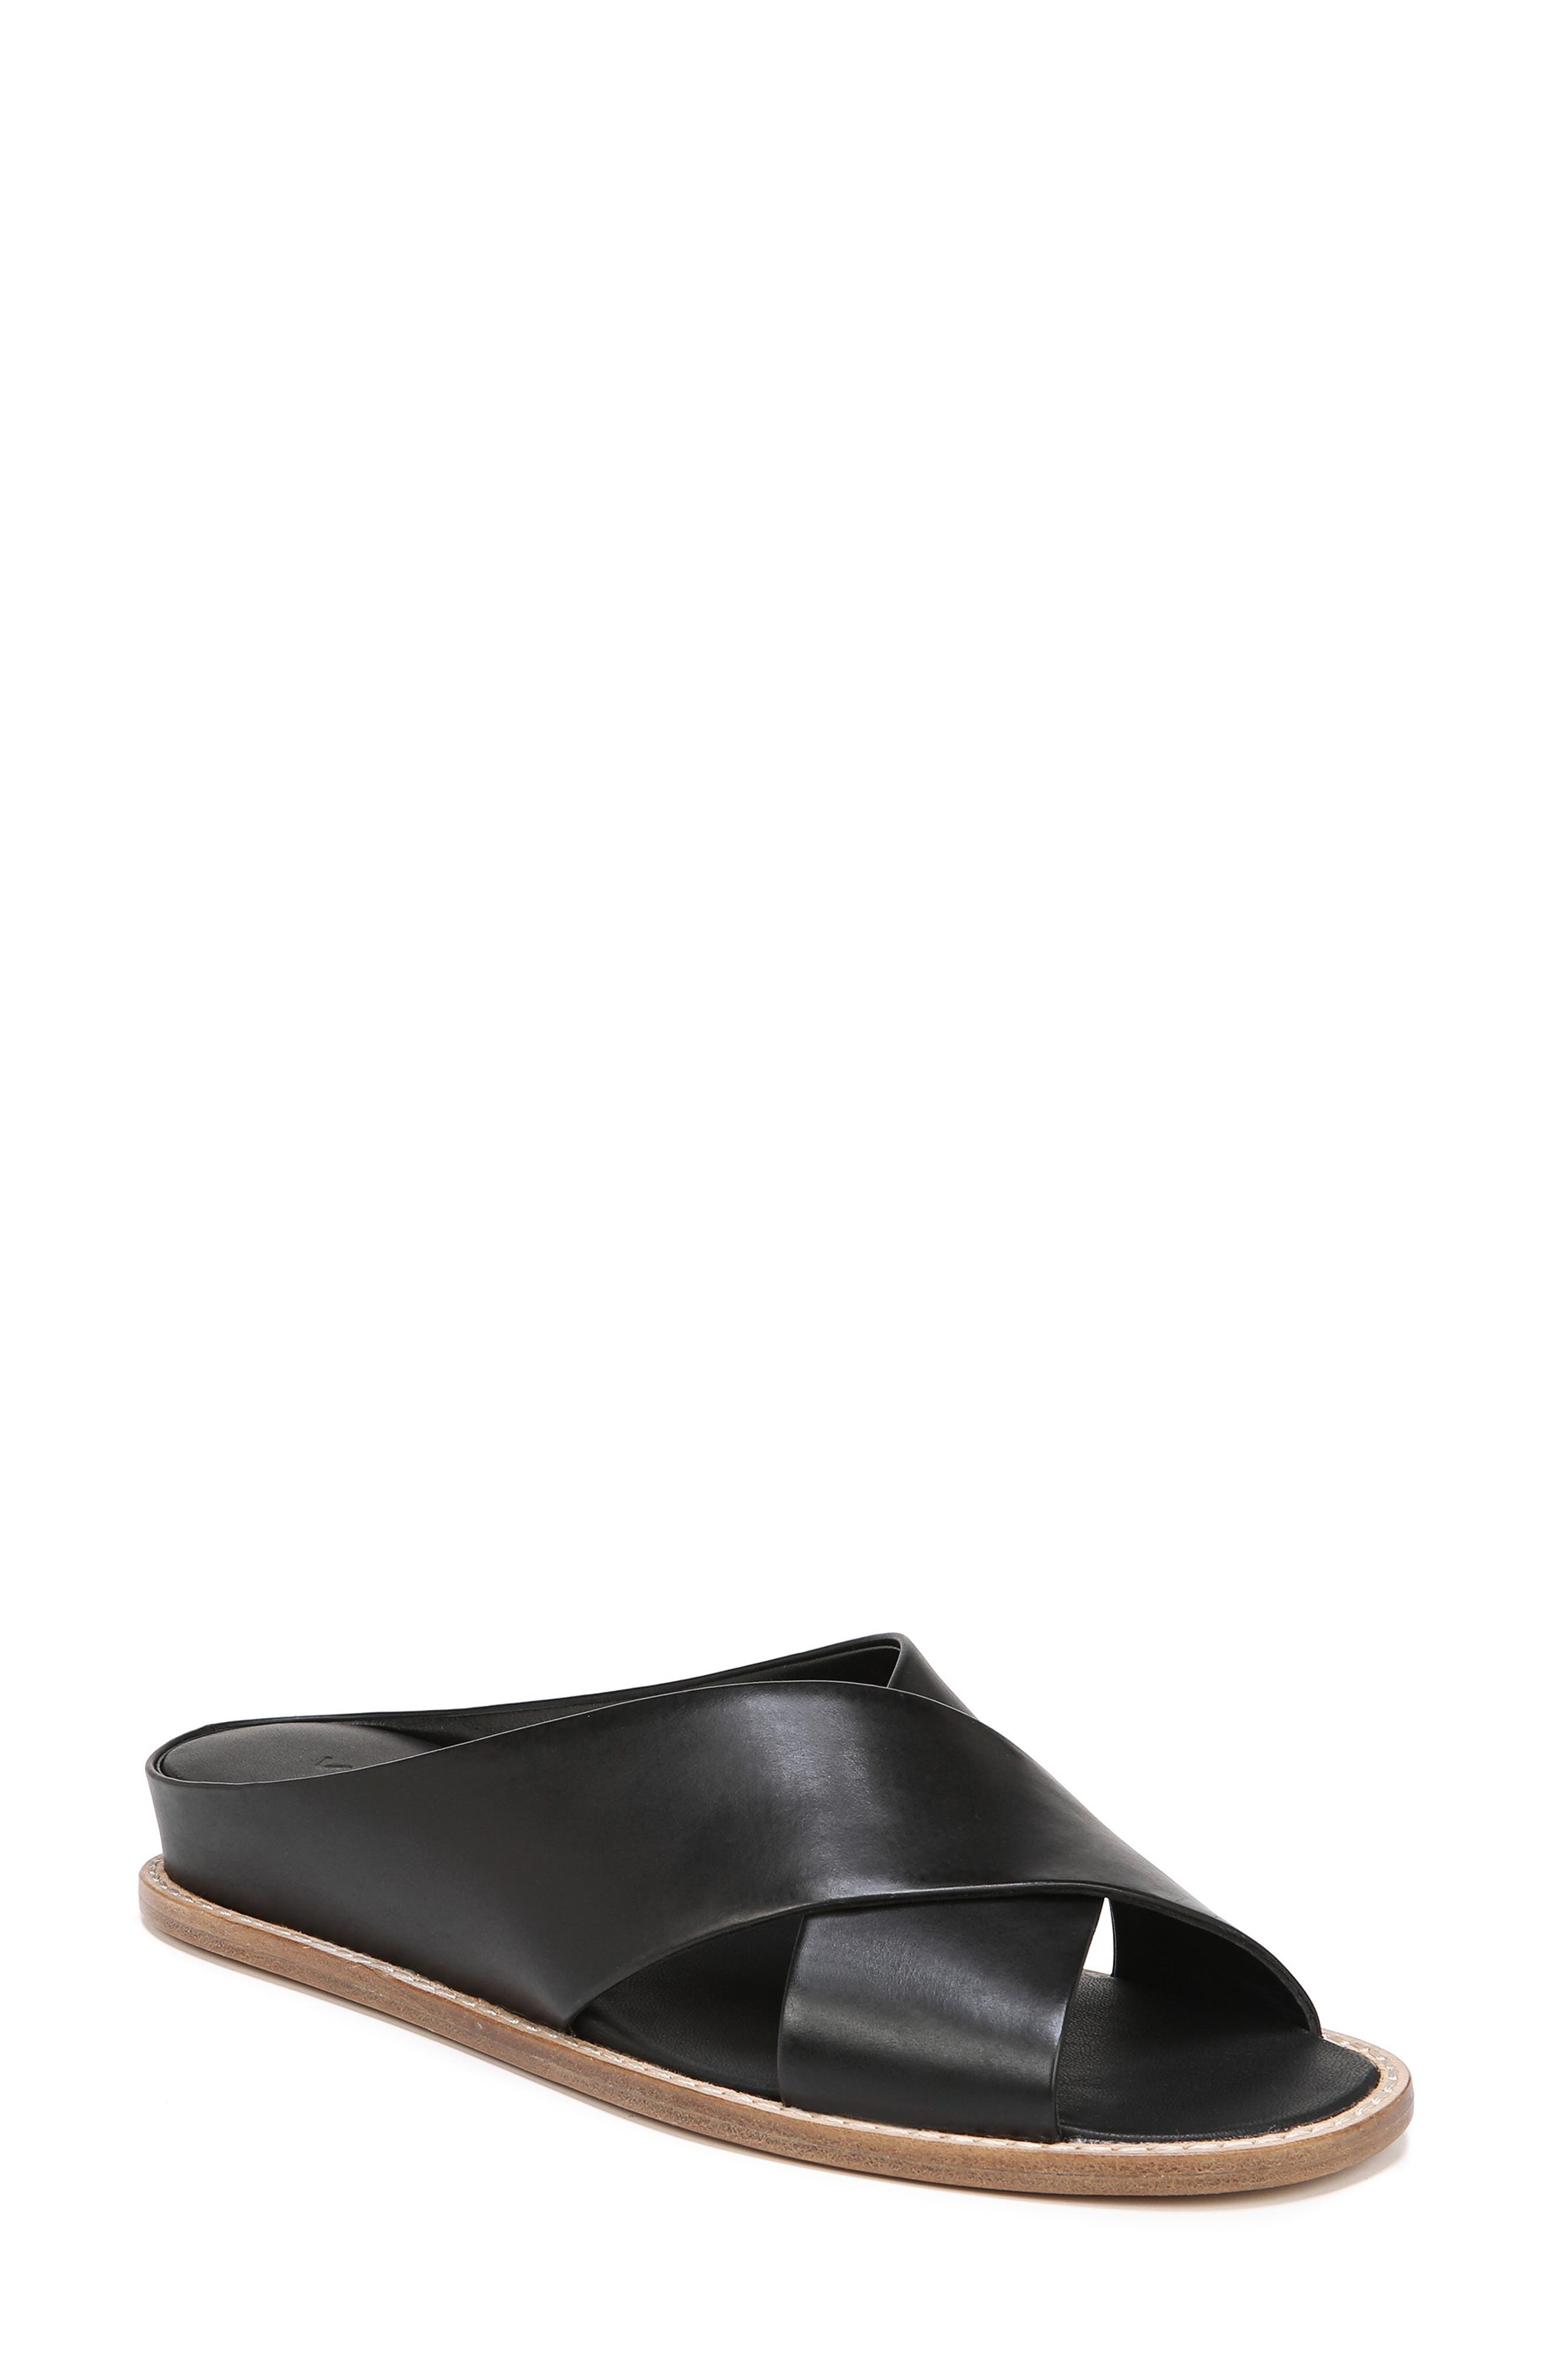 Fairley Cross Strap Sandal,                             Main thumbnail 1, color,                             BLACK LEATHER